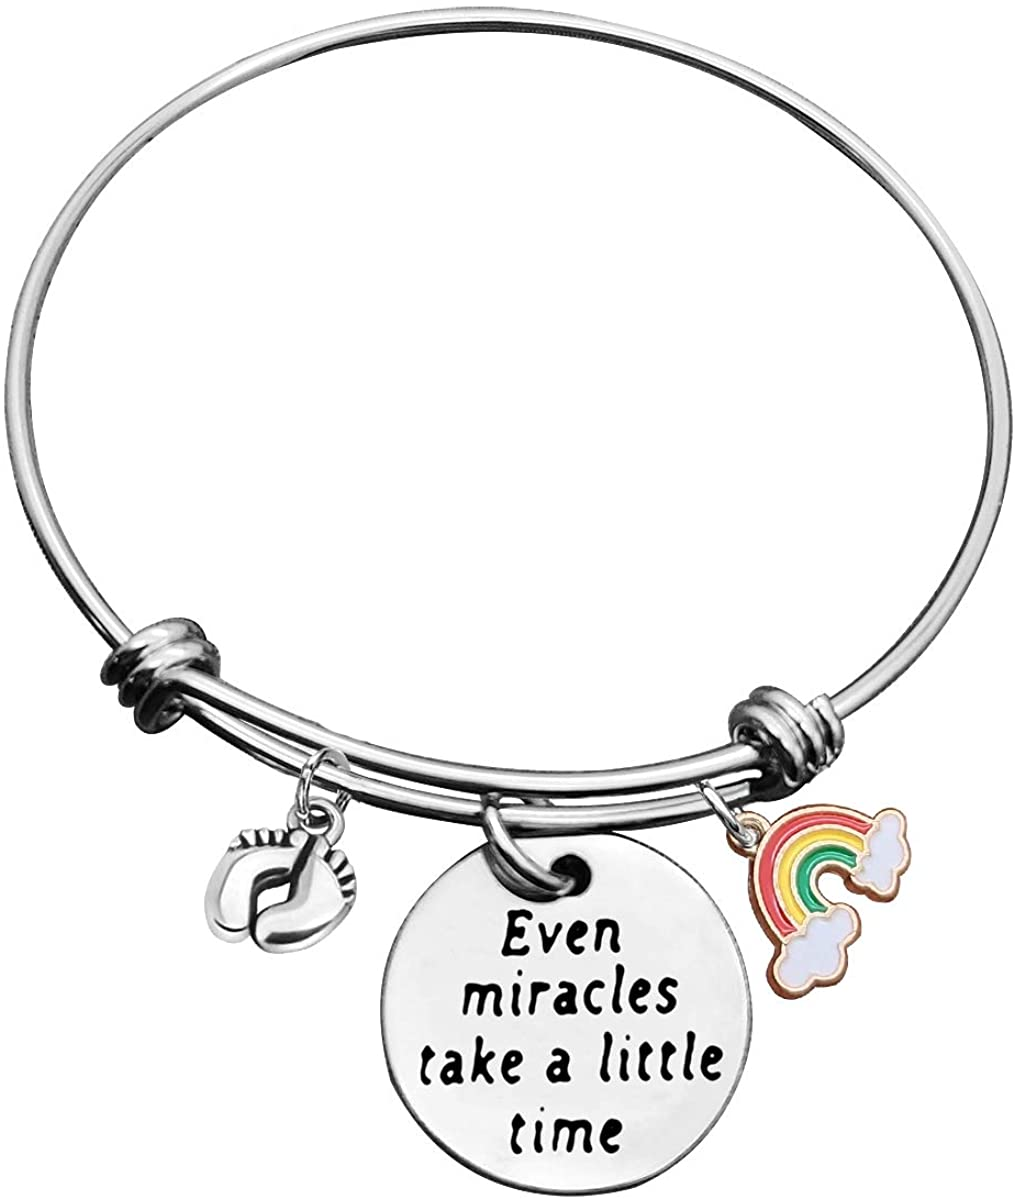 Inspirational Bracelet Encouragement Gifts Rainbow Baby Bracelets for Women Even Miracles Take a Little Time Bracelet Rainbow Bracelet for New Mom Memorial Jewelry Gifts for New Mommy